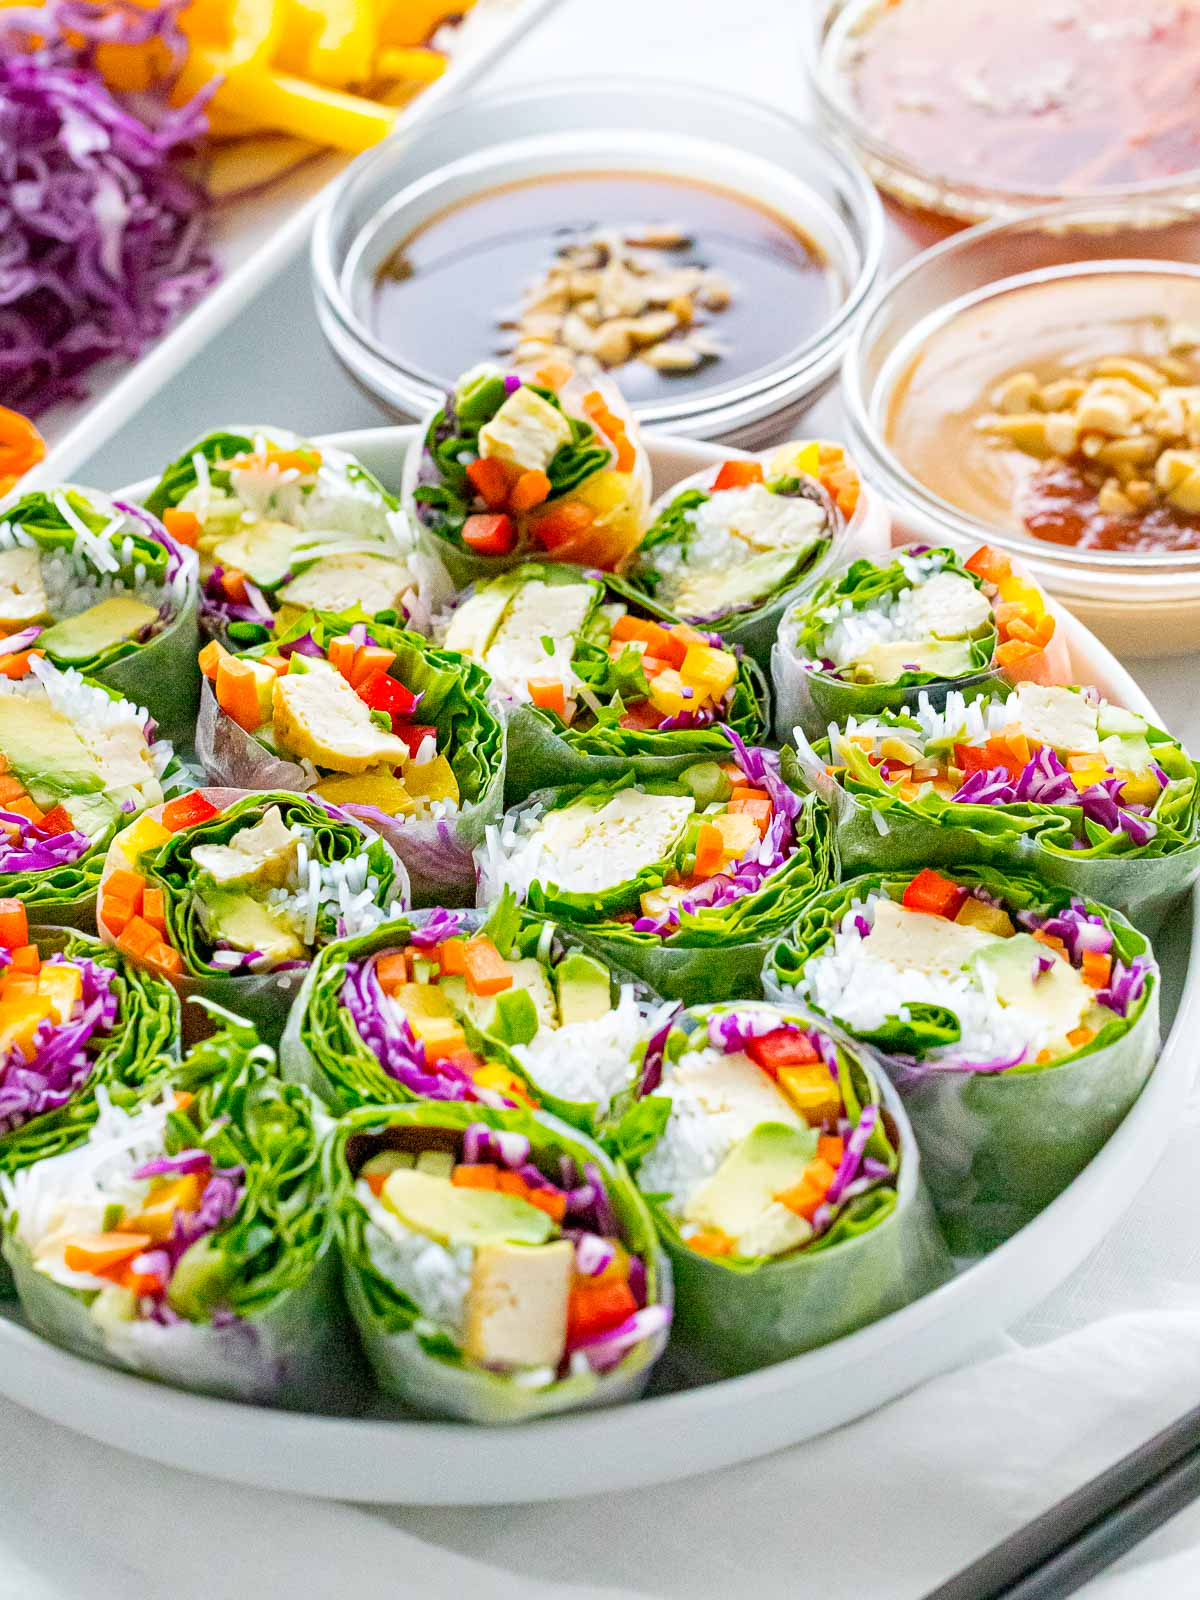 Vietnamese vegetarian summer rolls, goi cuon, with rainbow veggies, peanut sauce and hoisin sauce